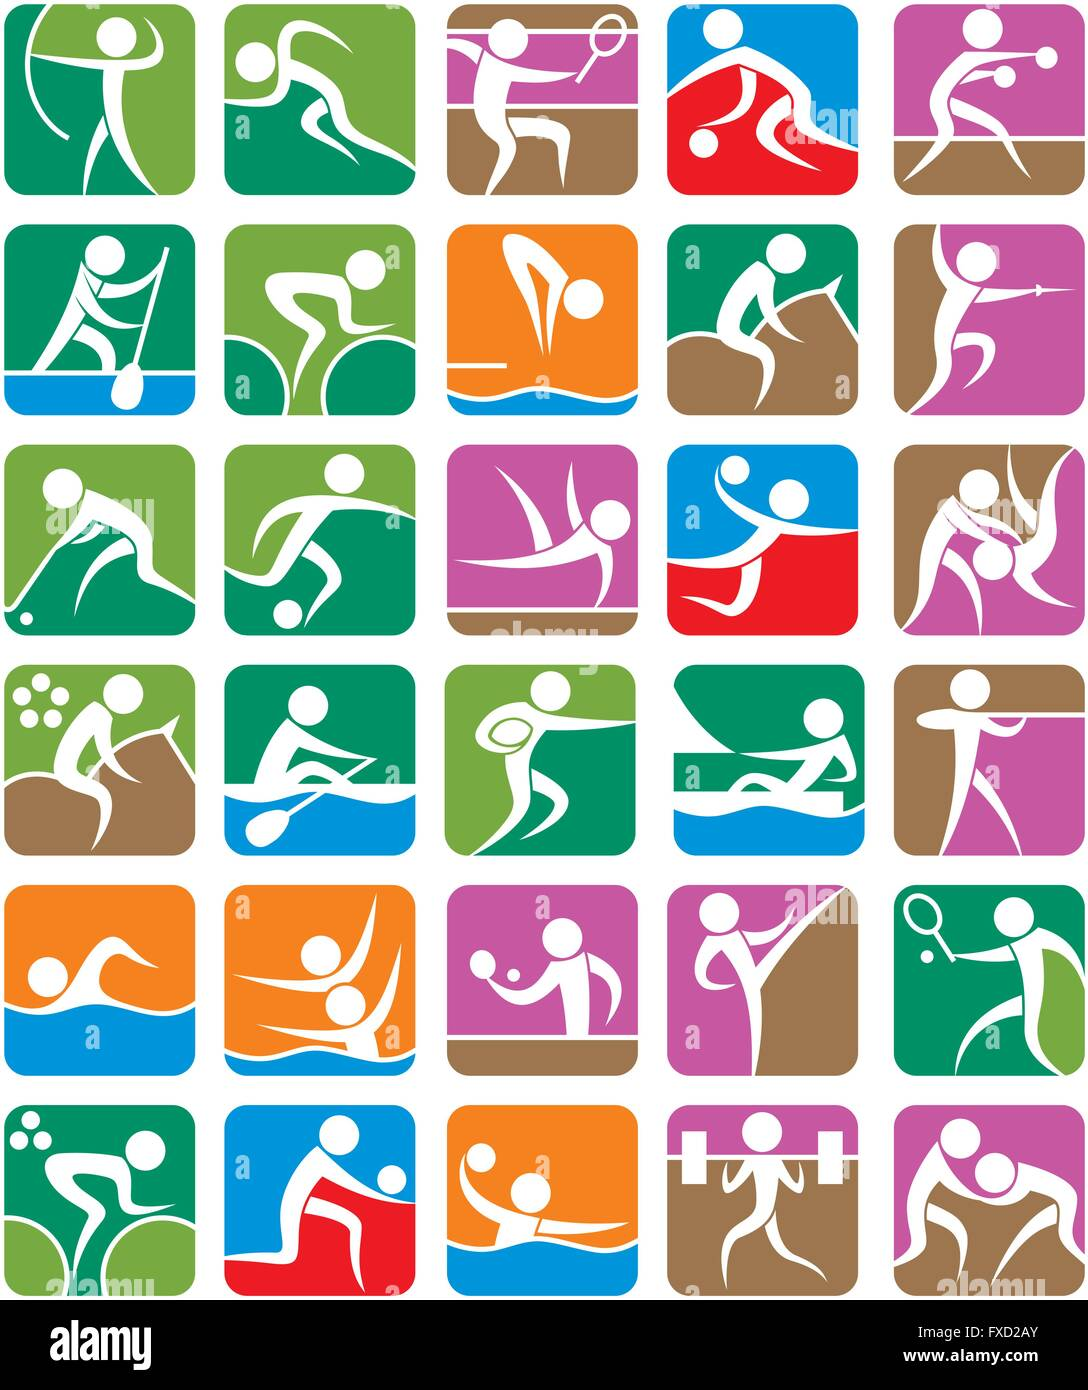 Set of 30 pictograms of the Olympic summer sports. - Stock Vector